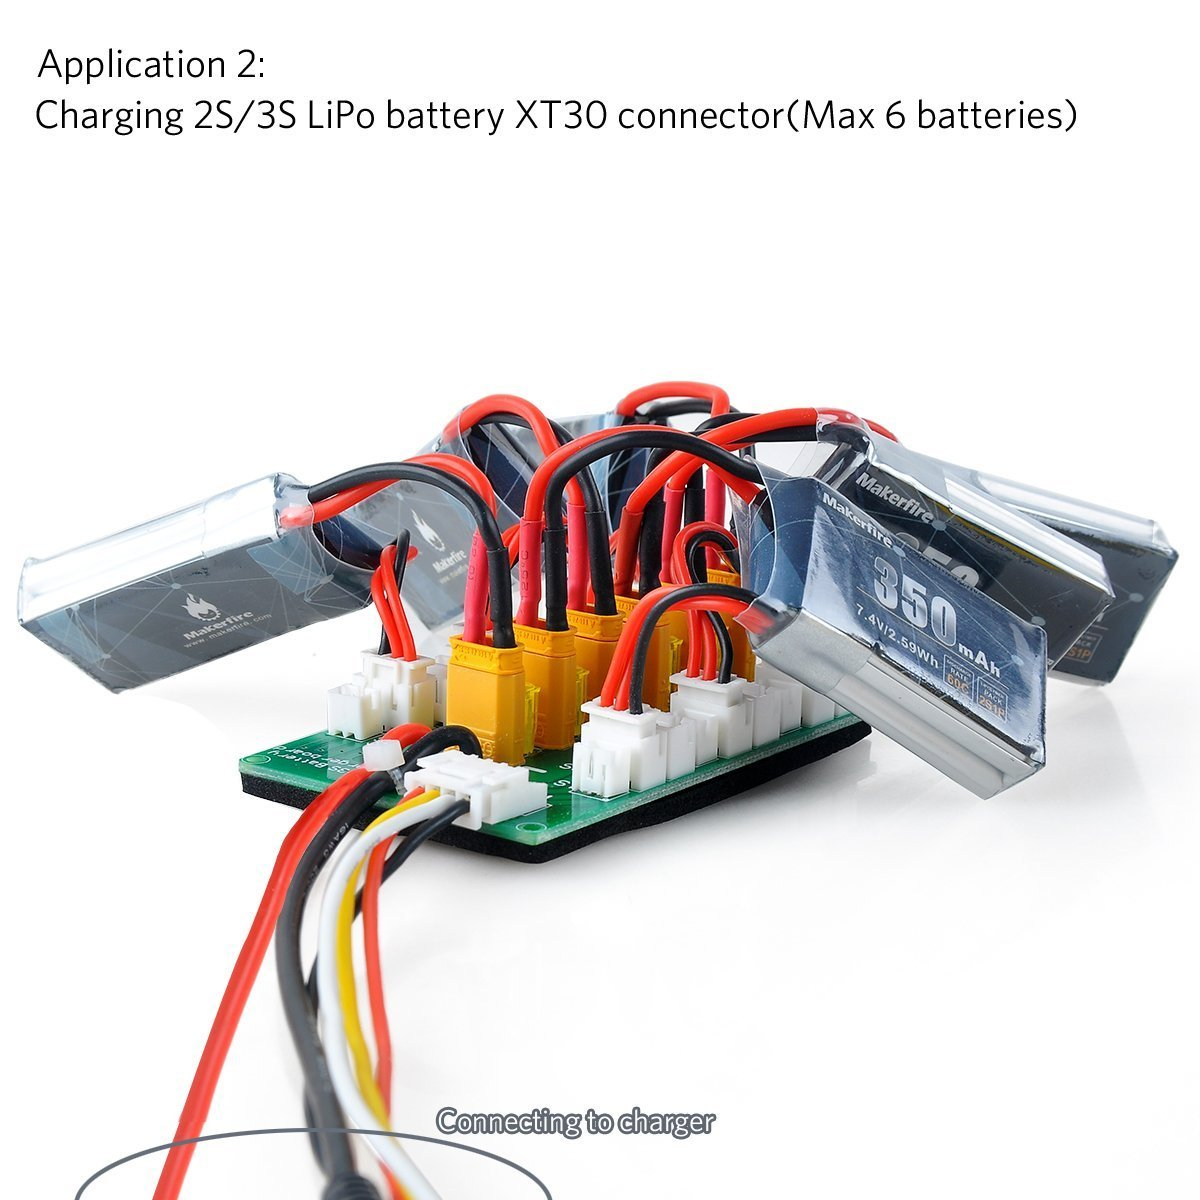 Fancywhoop Xt30 Parallel Charging Board For 2s 3s Lipo Batteries Wiring Compatible With Jst Connector Toys Games